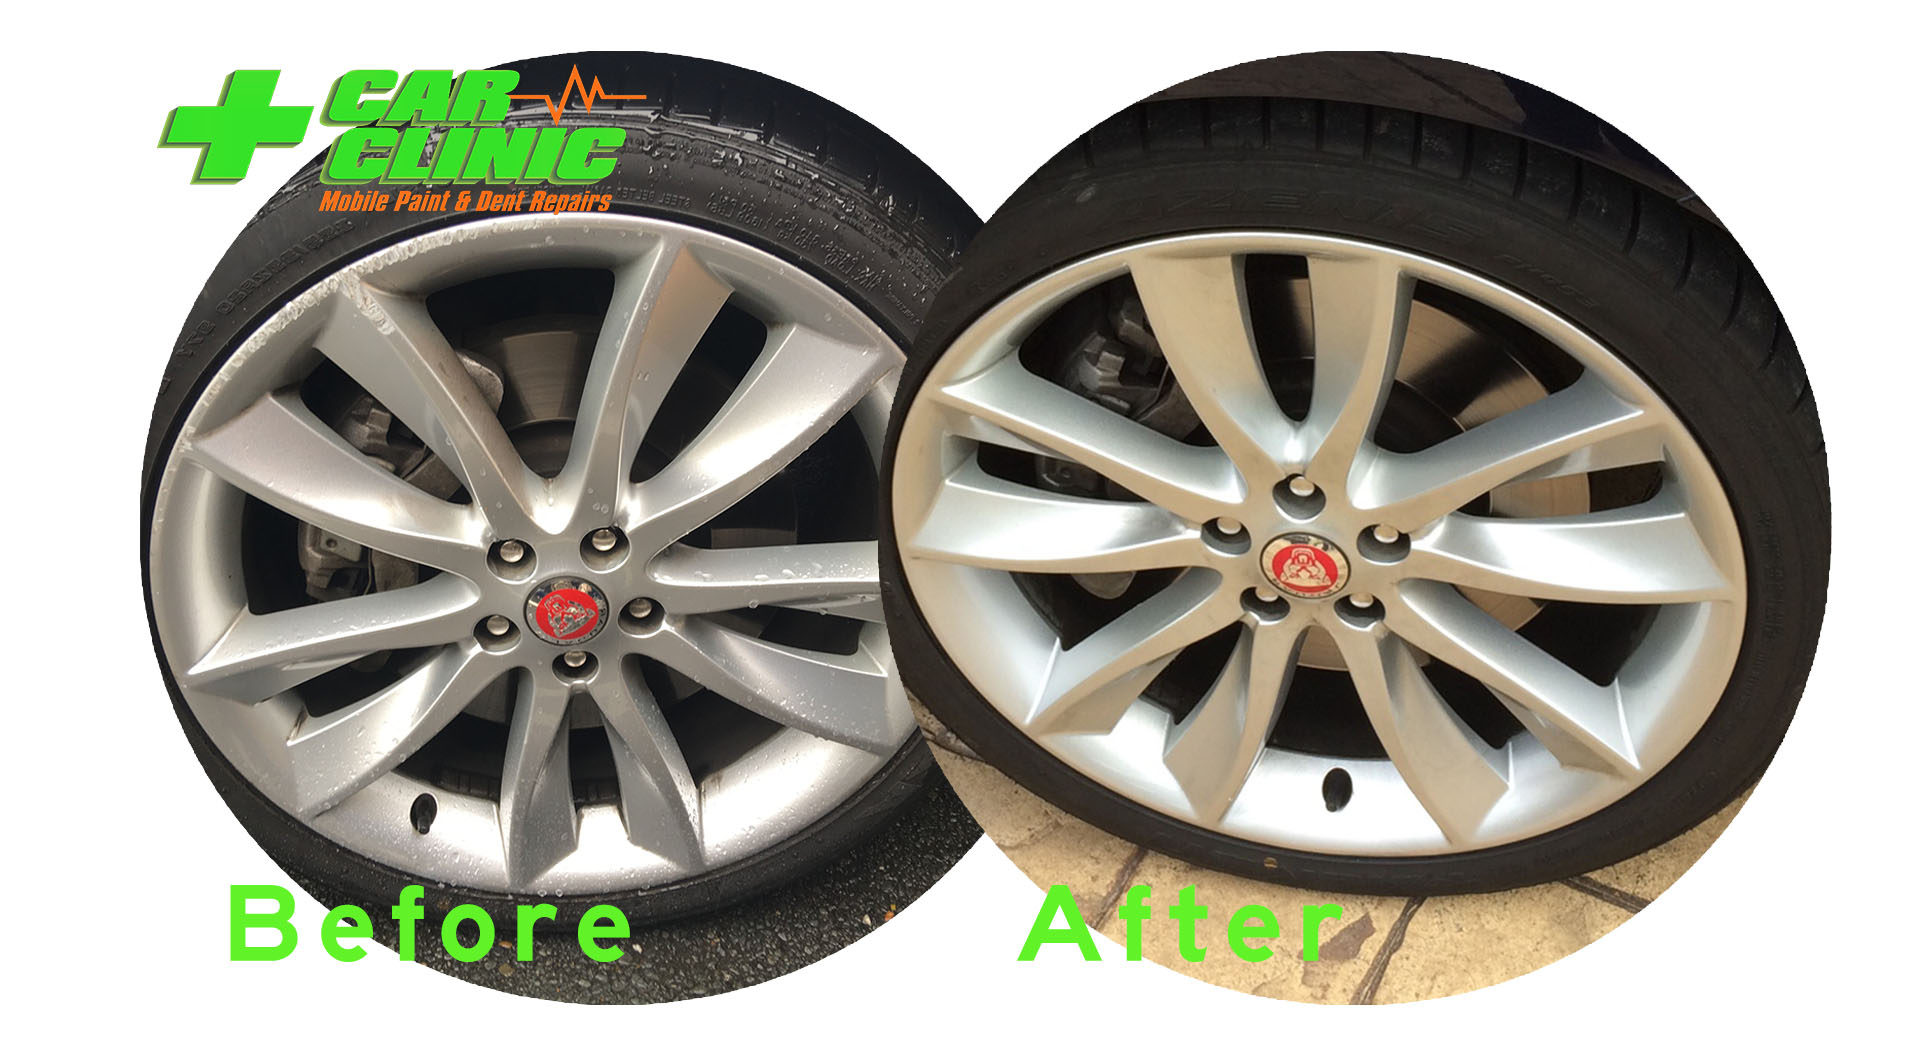 Mobile Paint & Dent Repairs - Brisbane - Before After Image 04